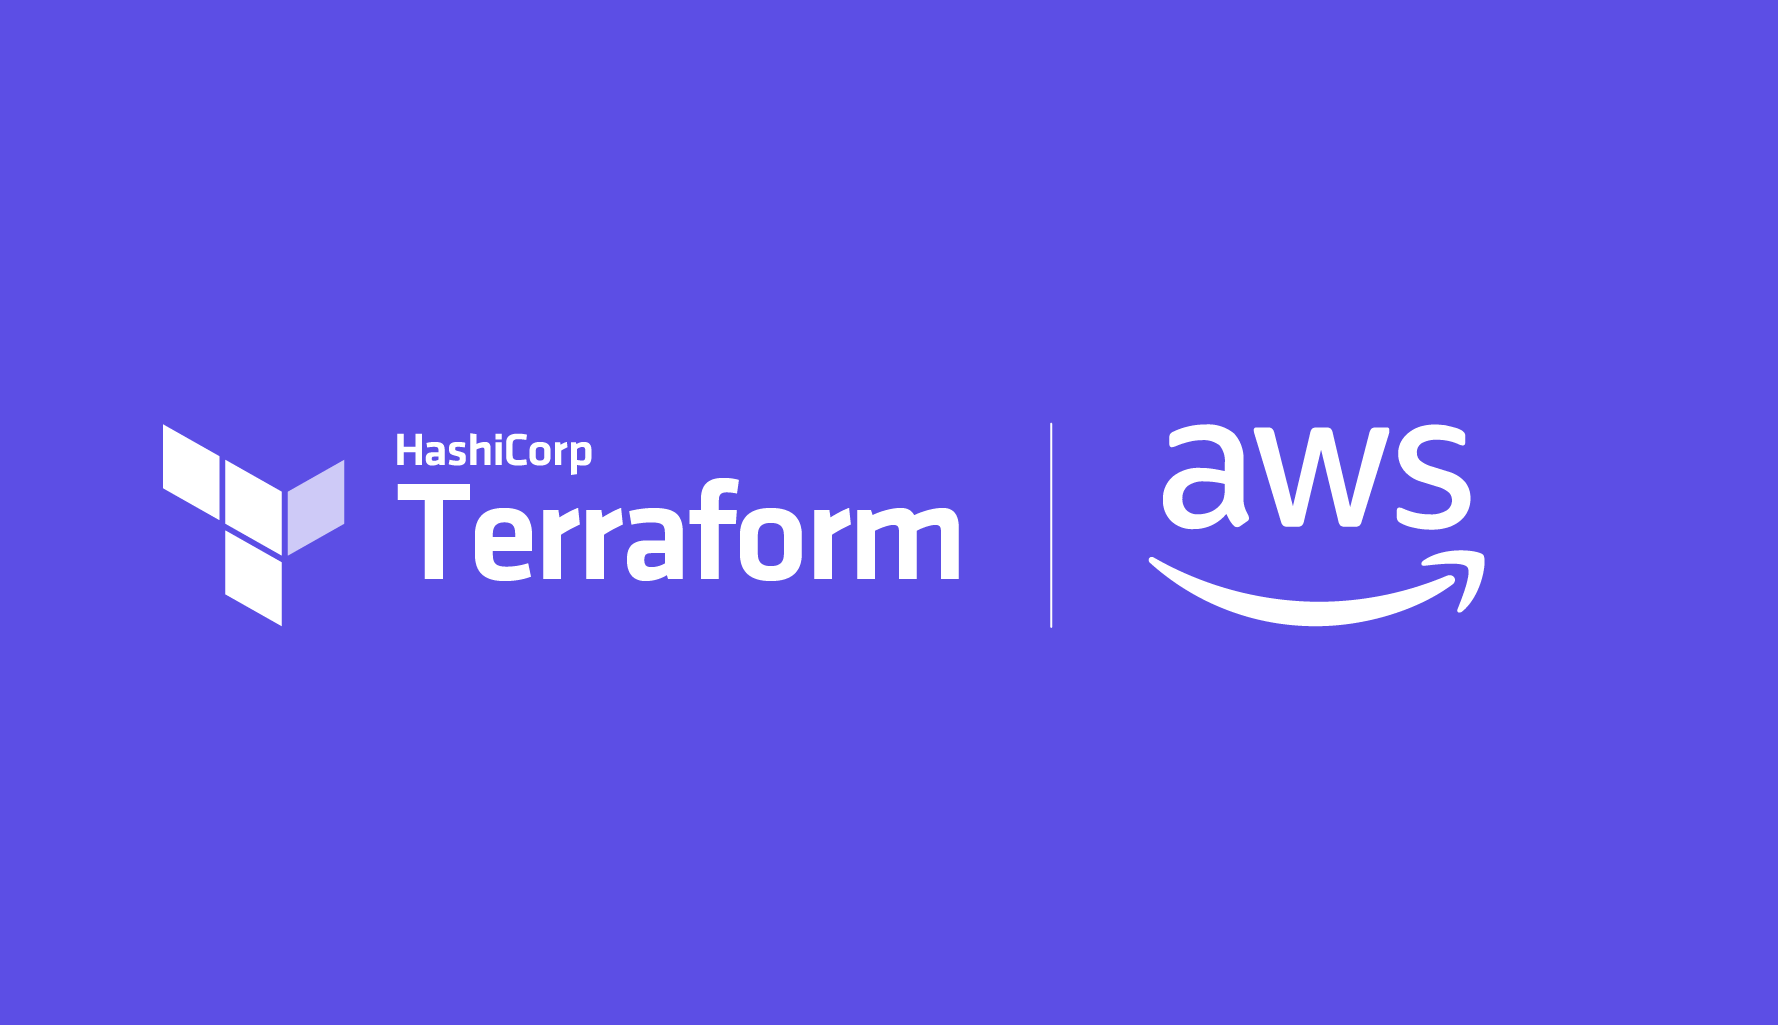 Terraforming RDS: What Instacart Learned Managing Over 50 AWS RDS PostgreSQL Instances with Terraform Image